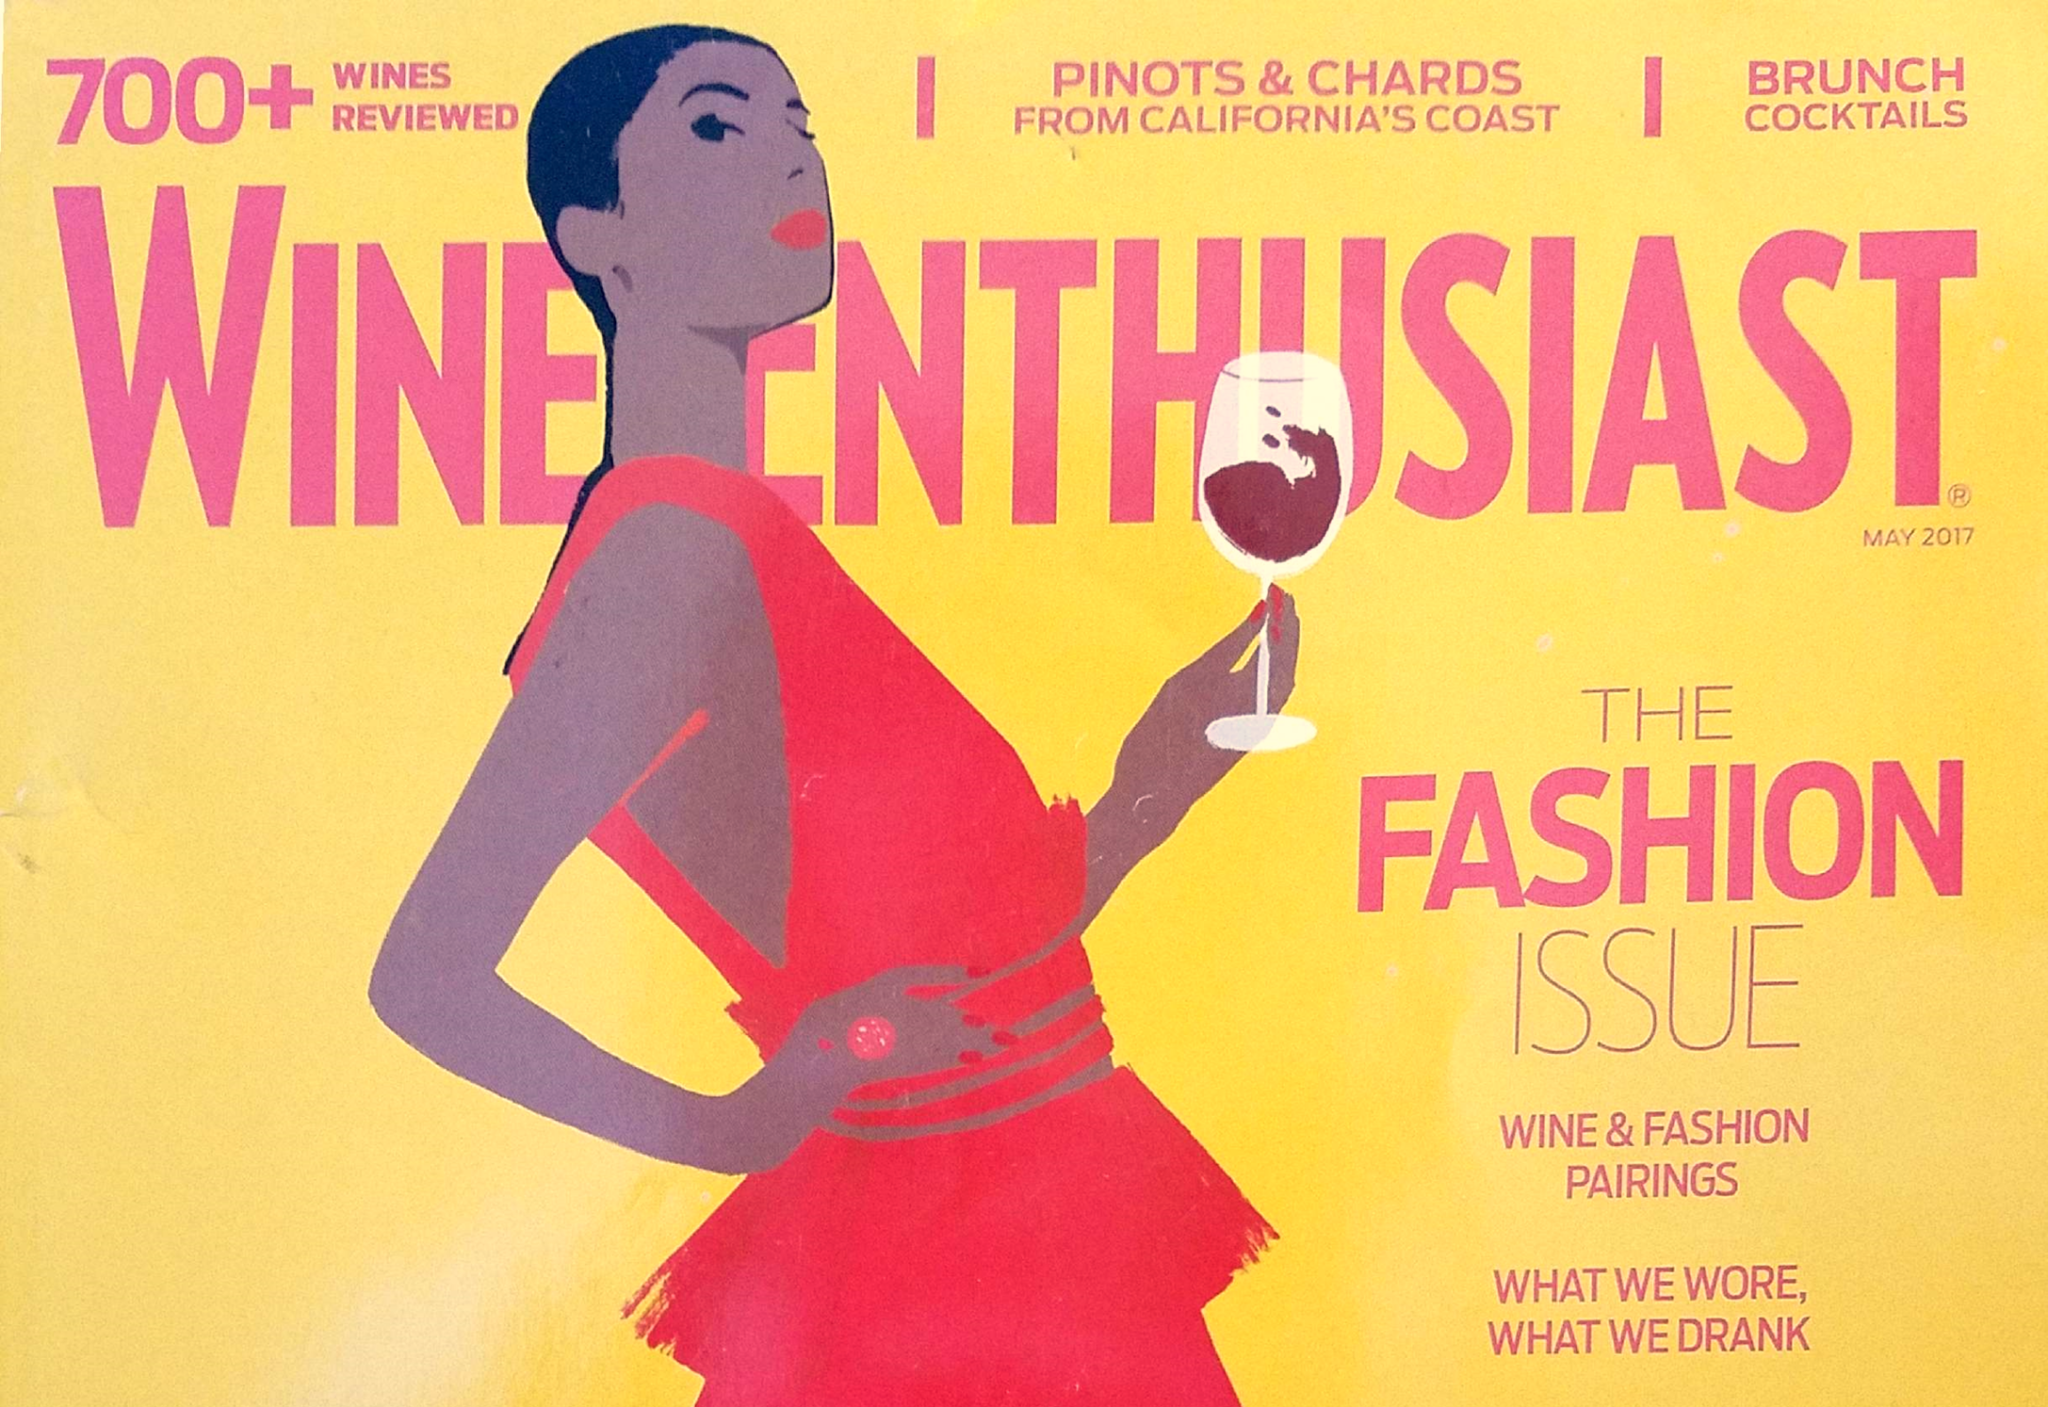 Check out this silky & spicy, full-page spotlight in May's Wine Enthusiast!